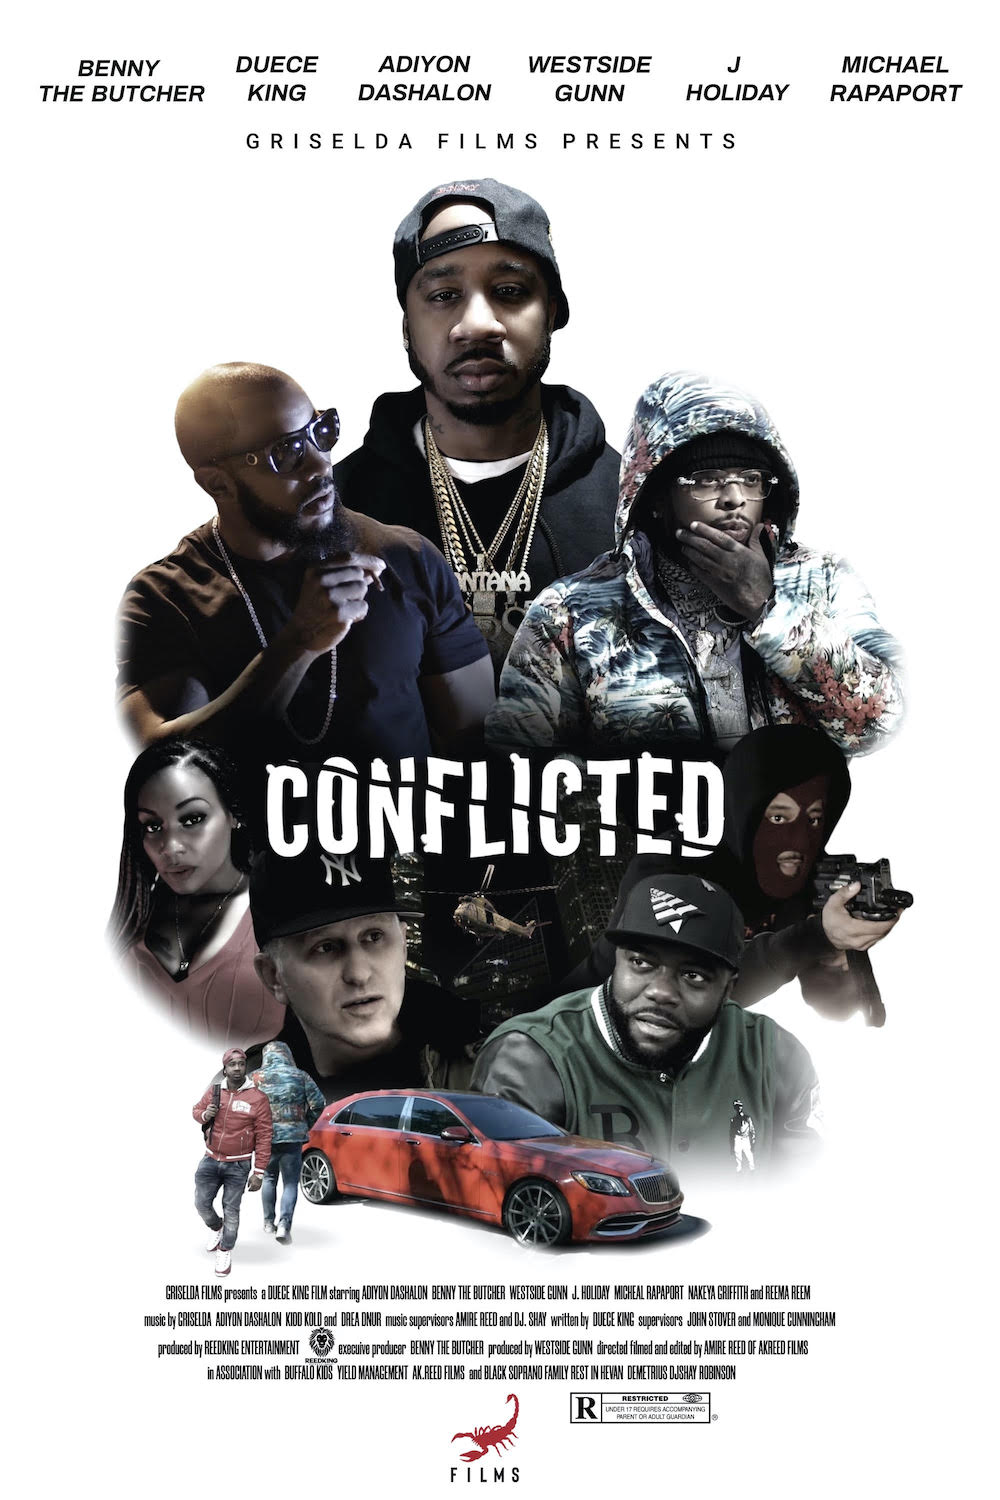 Griselda Announces Conflicted Film Starring Benny The Butcher, Westside Gunn, Michael Rapaport, & More